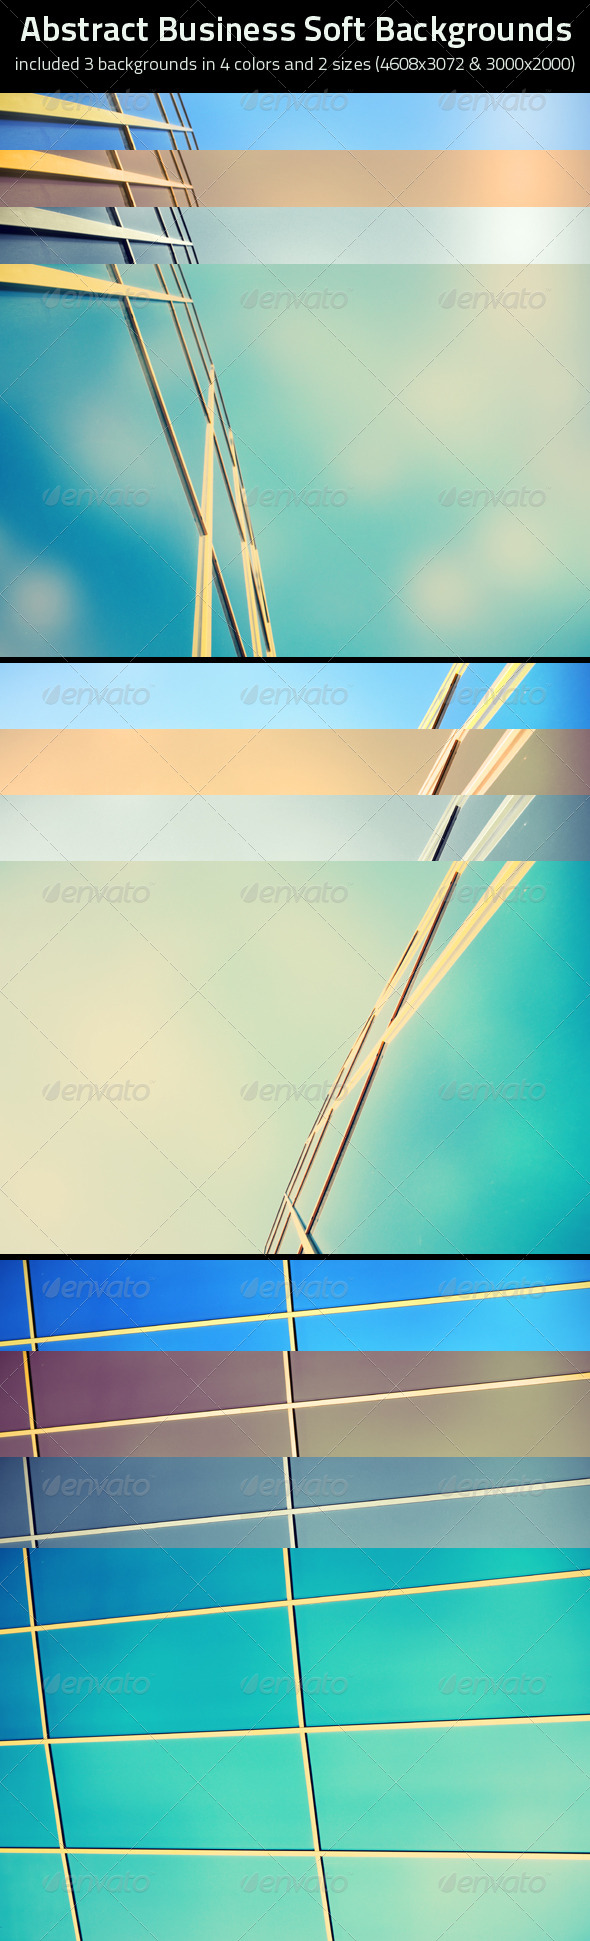 Abstract Business Soft Backgrounds